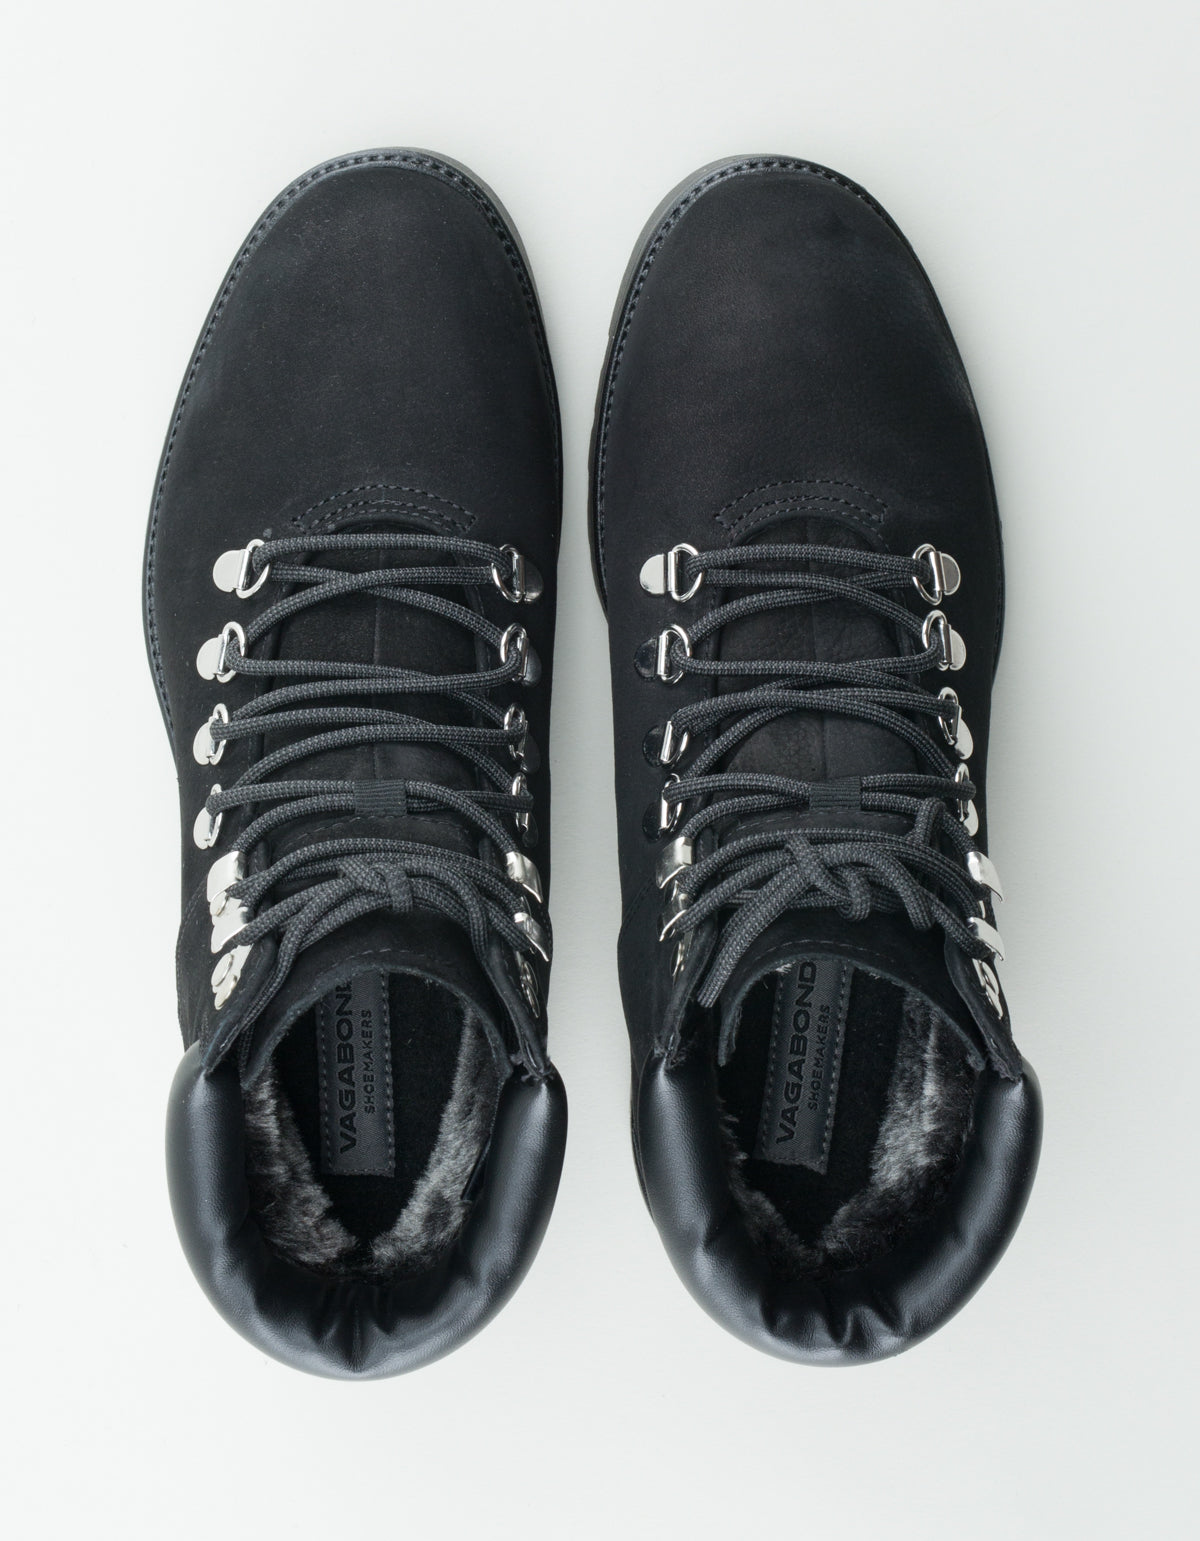 Vagabond Kenova Nubuck Lace-Up Hiking Boot Black